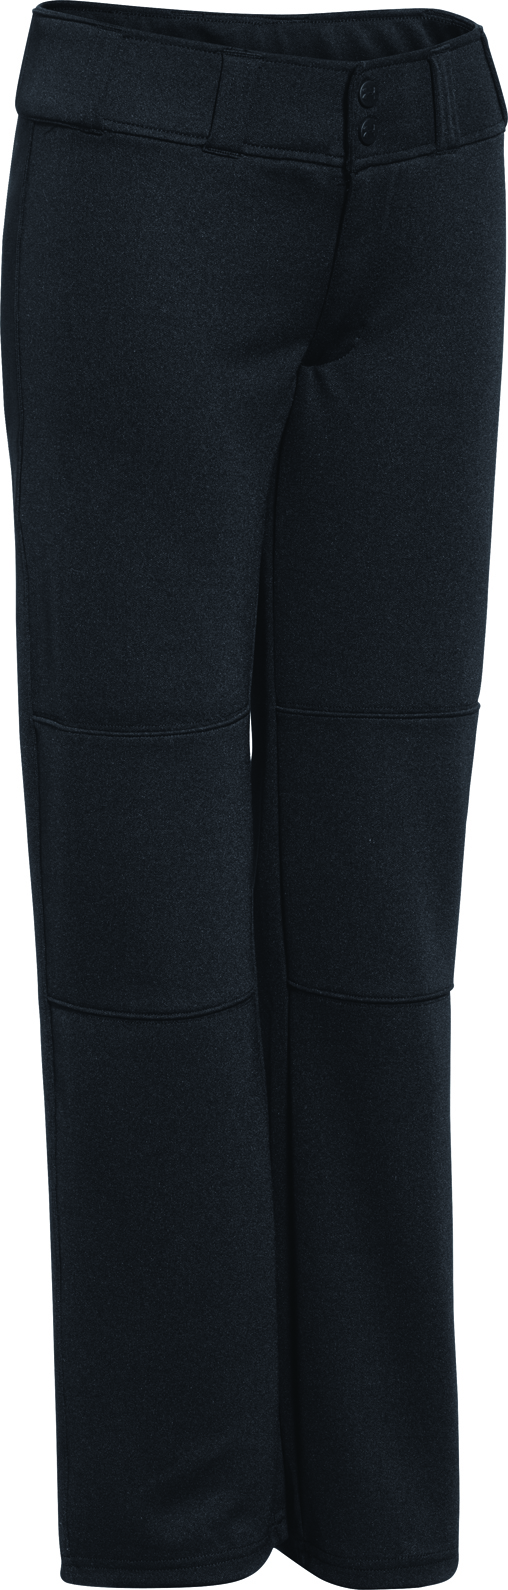 Youth Lead-off 2 Baseball Pant, Black, swatch